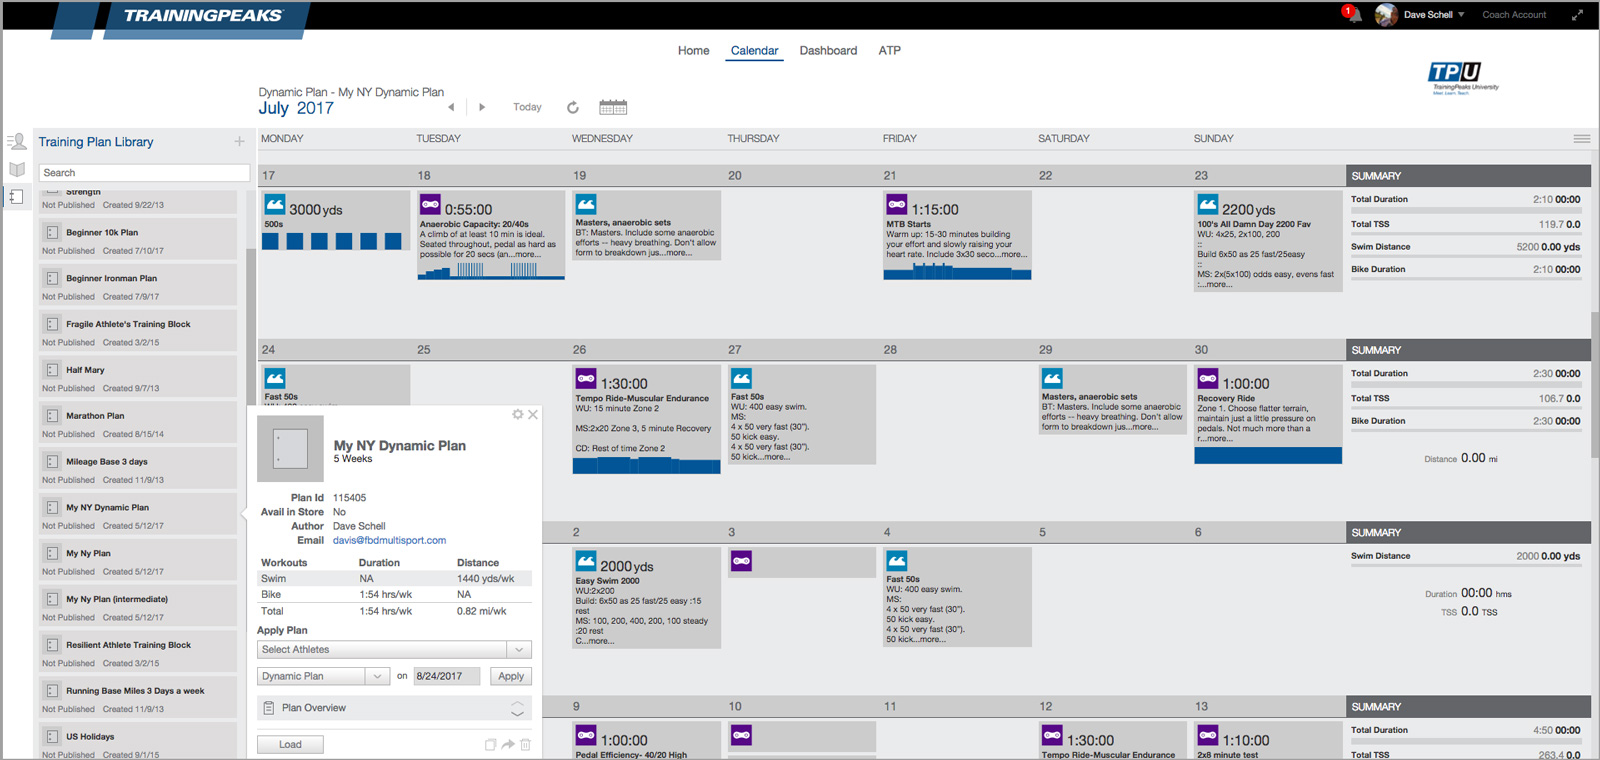 08218-streamline-your-group-planning-process-with-trainingpeaks-fig2